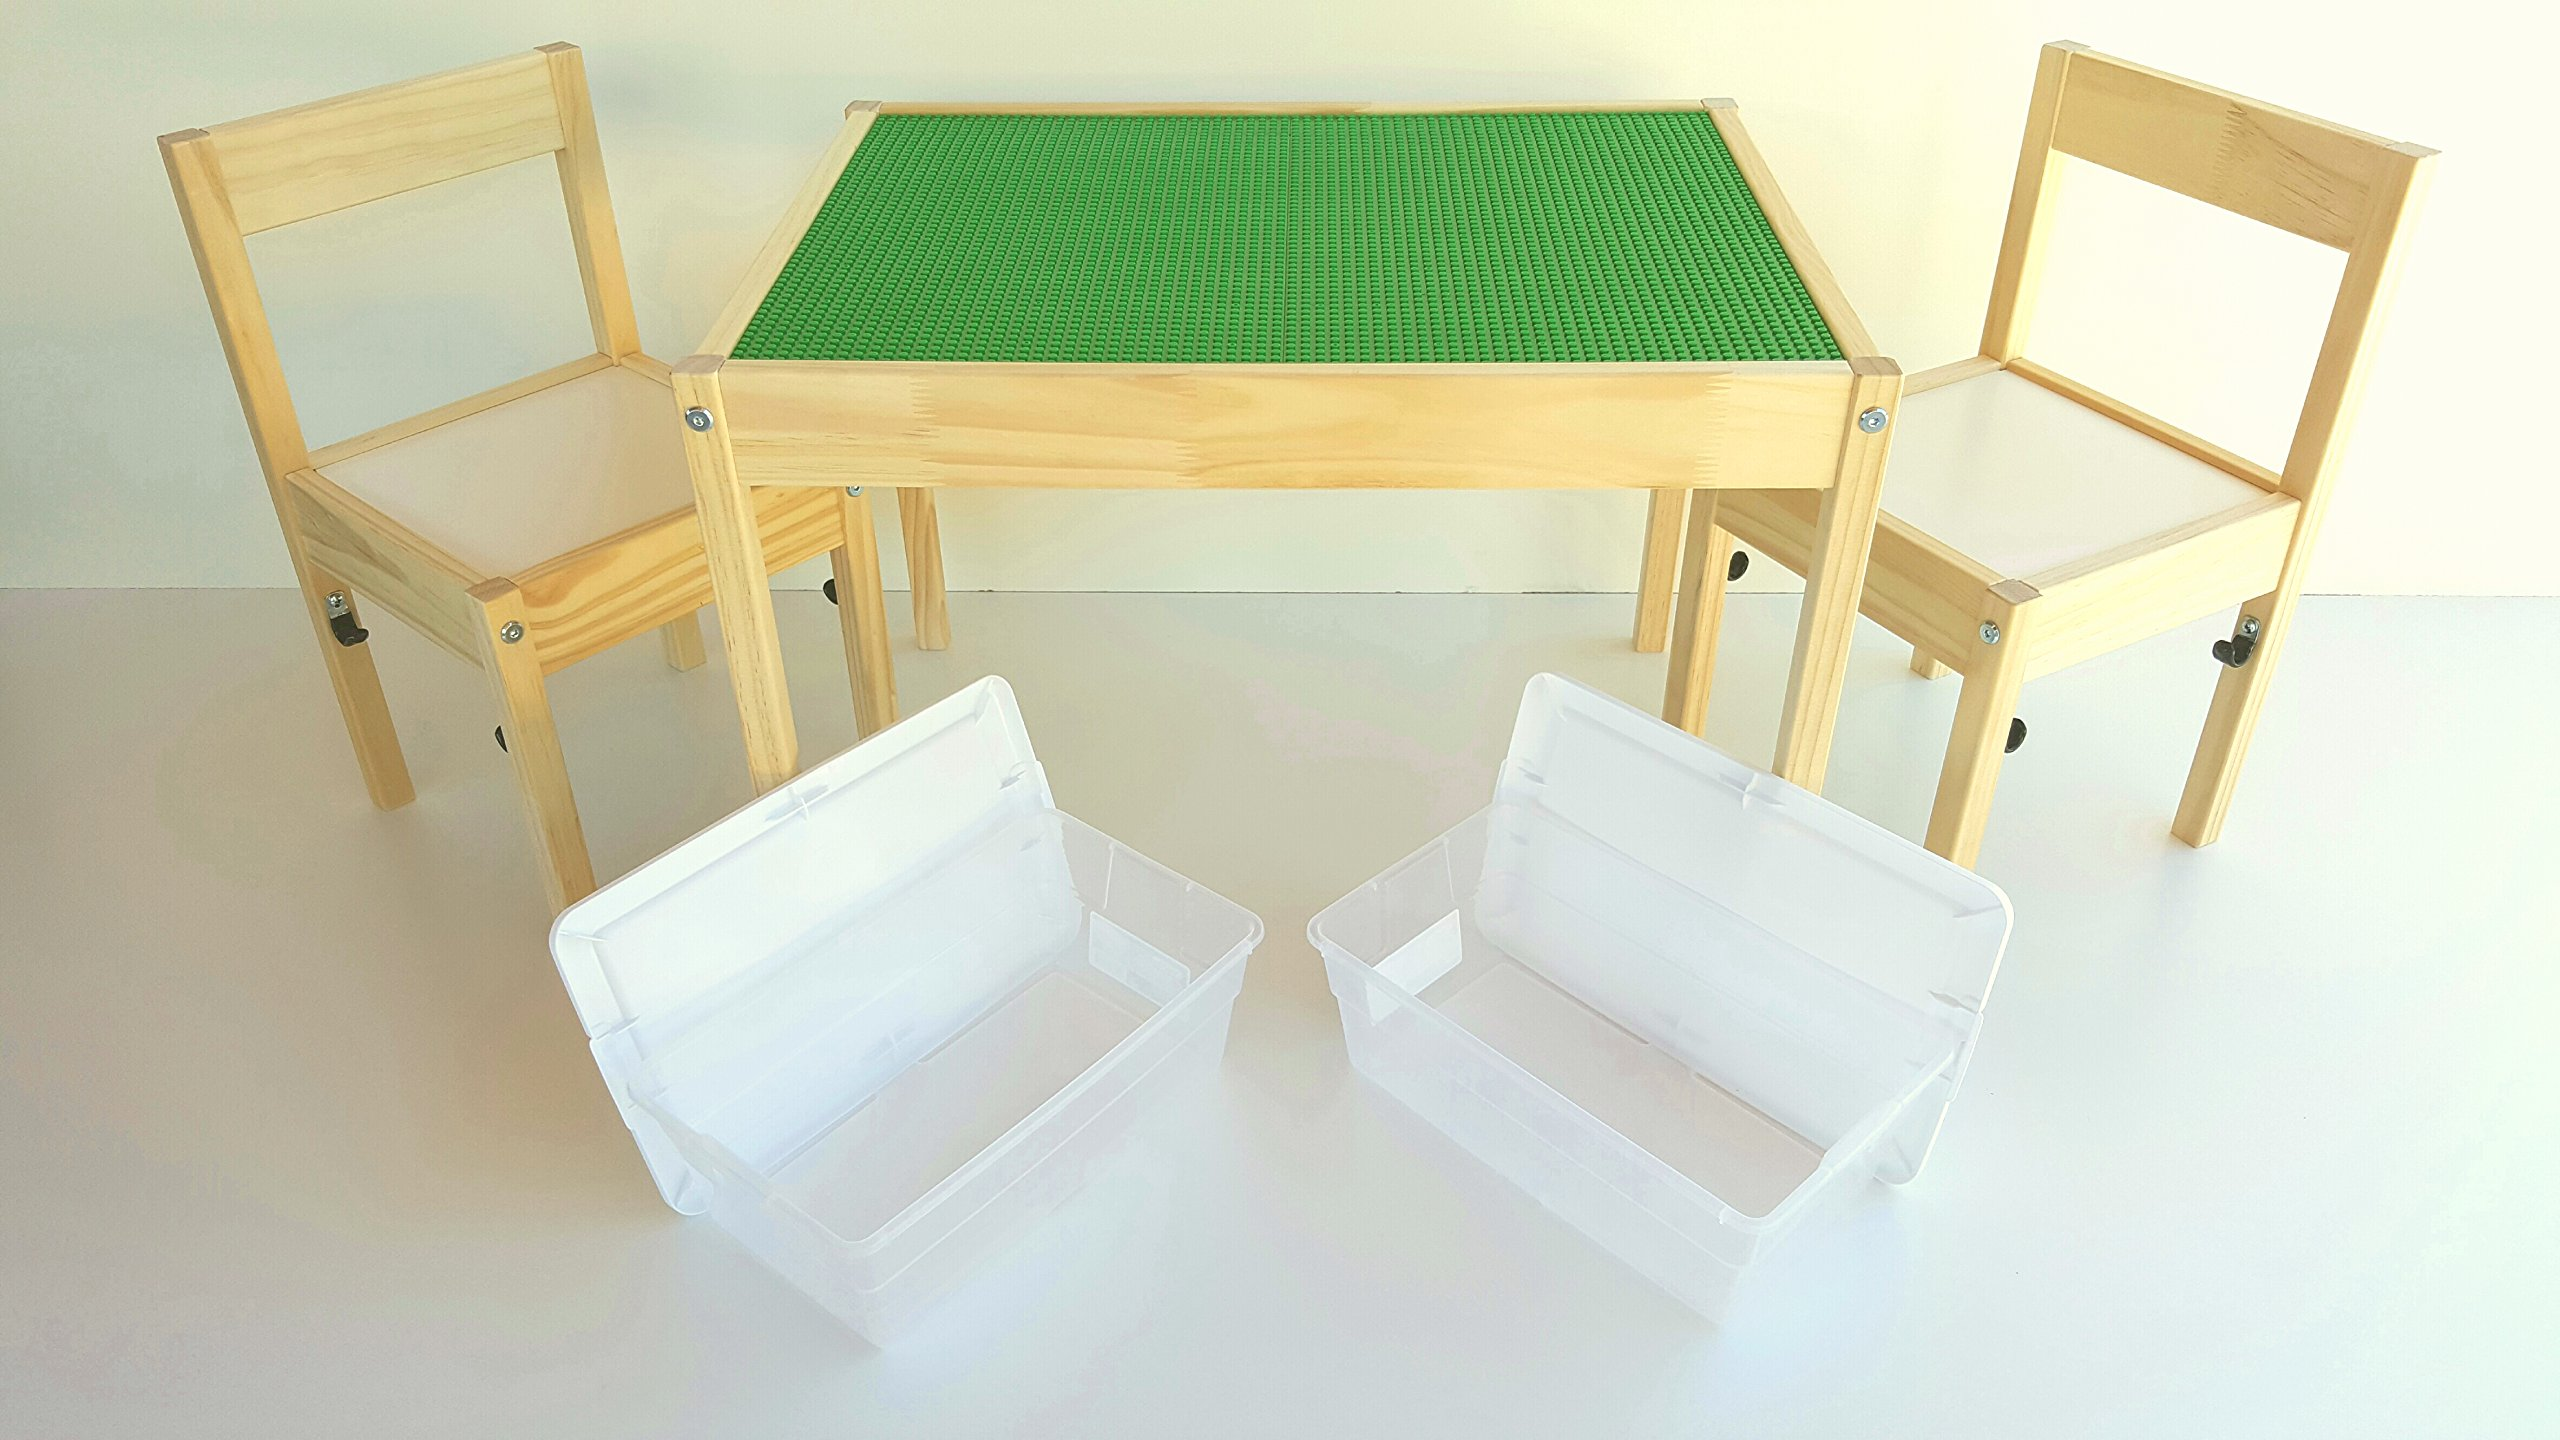 Special edition LEGO table - LEGO-Compatible Ikea childrens table and chairs set with storage bins